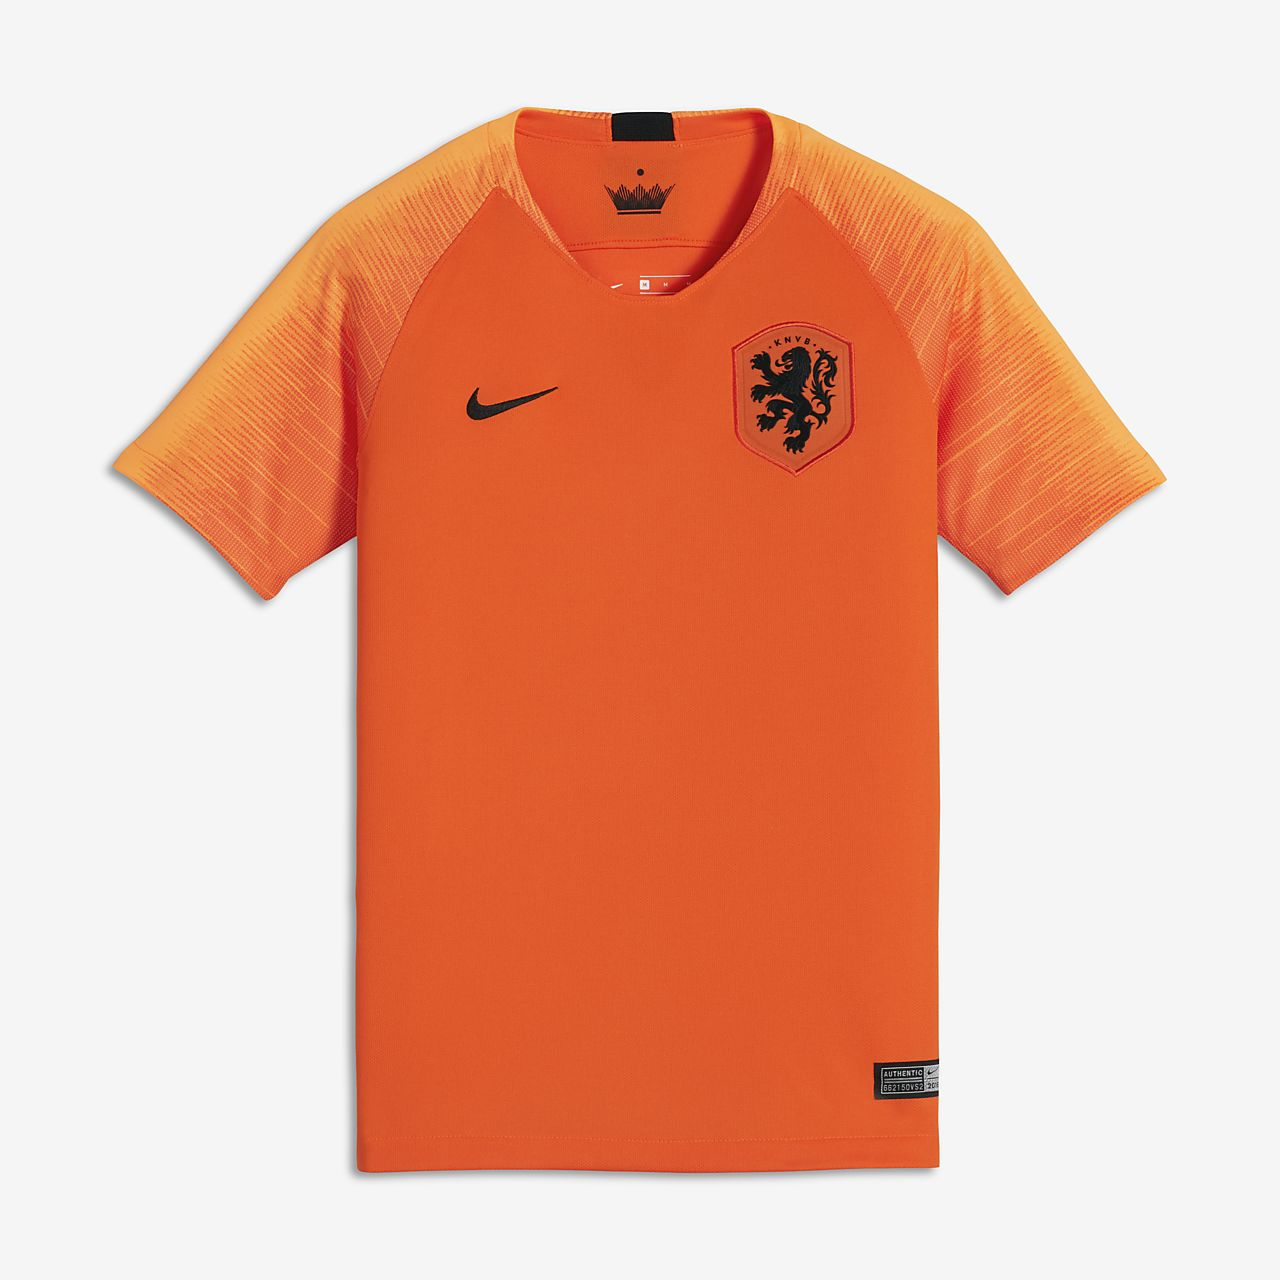 2018 Netherlands Stadium Home fotballdrakt for store barn